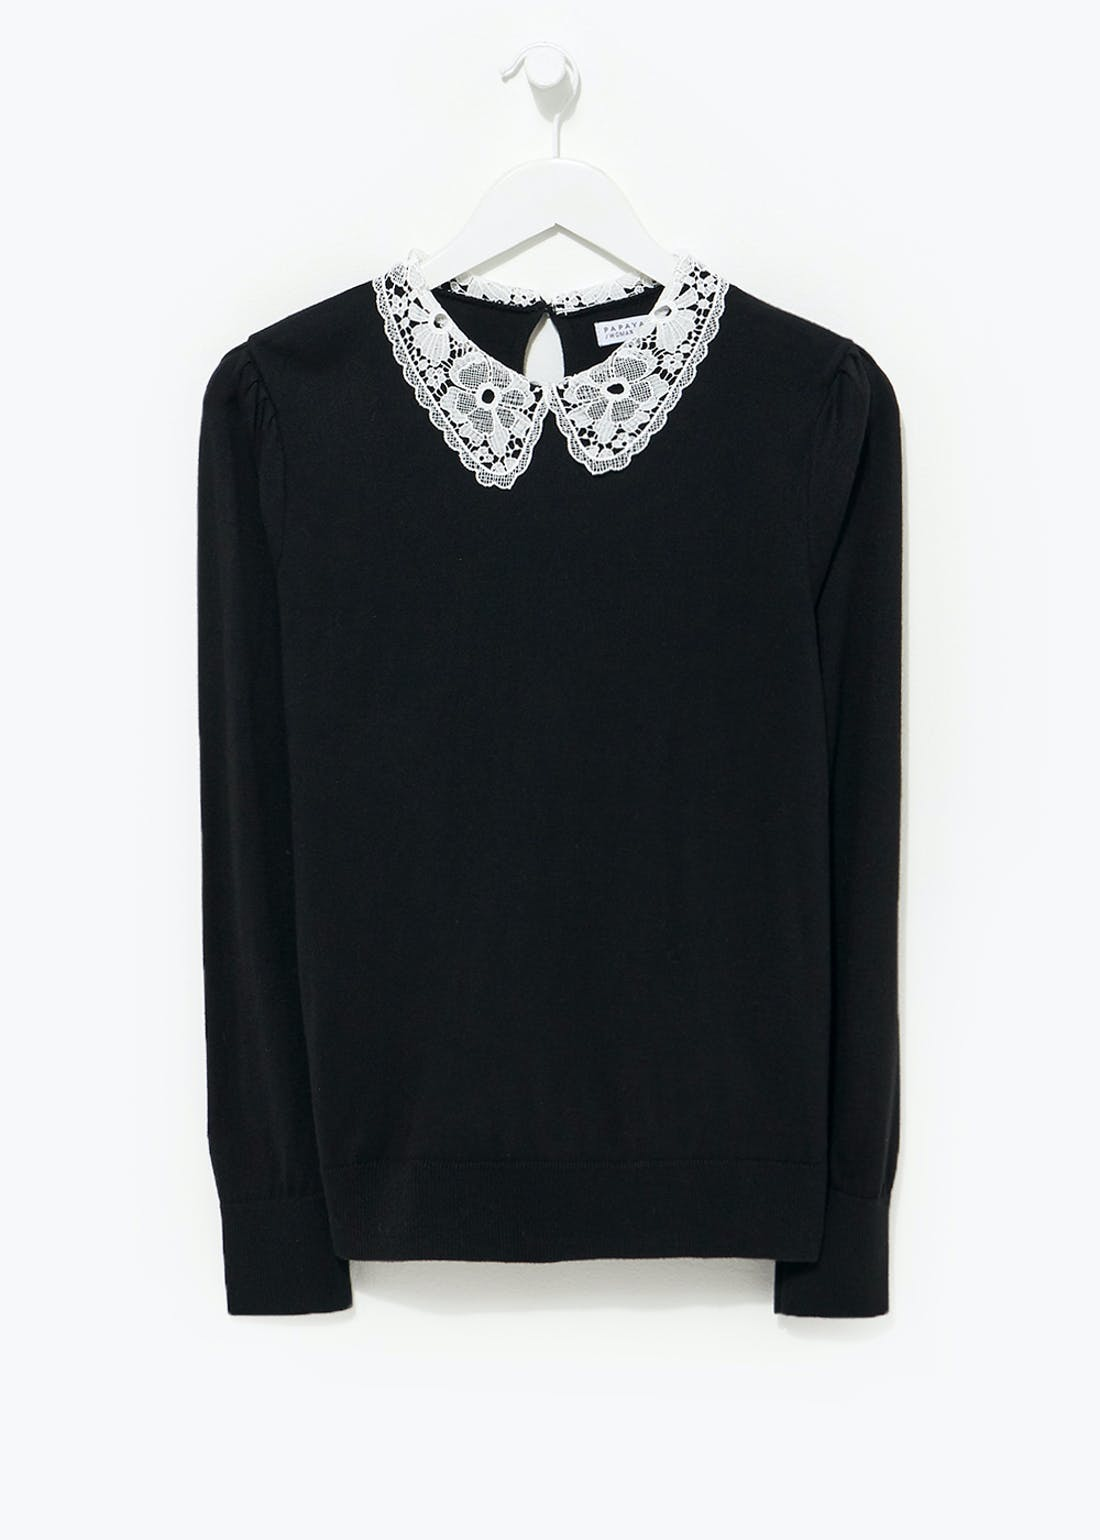 2 in 1 Lace Collar Shirt Jumper